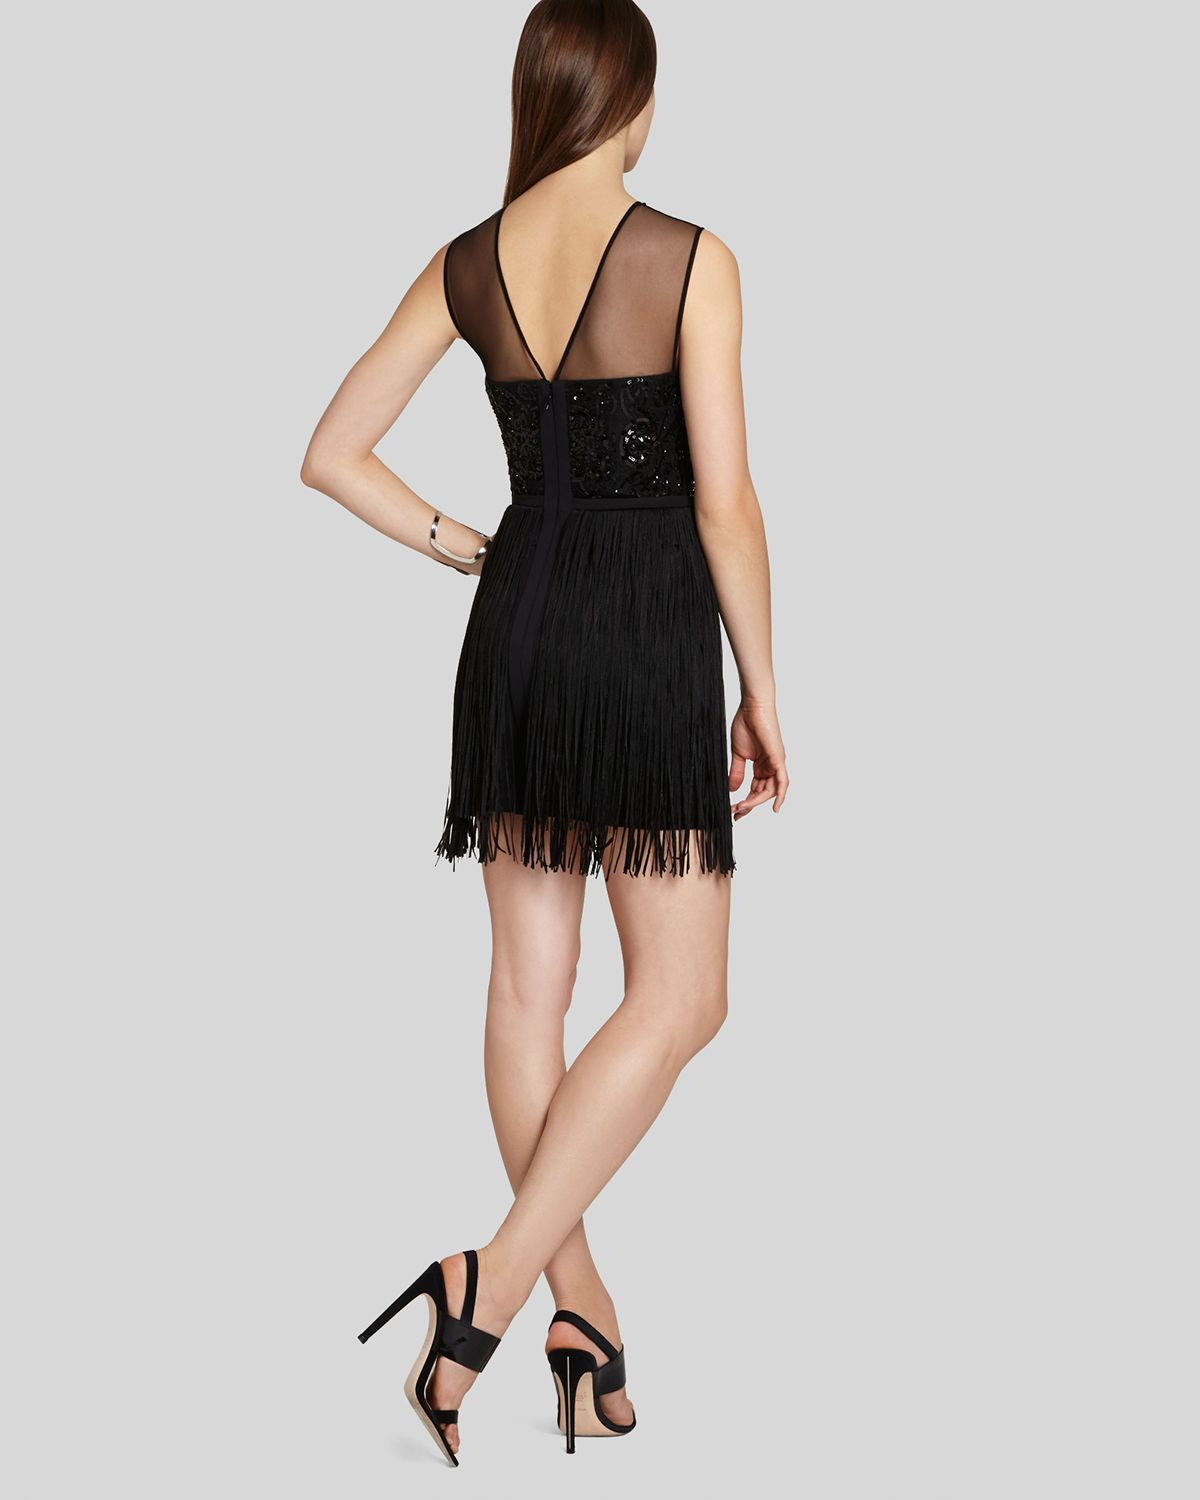 Bcbgmaxazria Bcbg Max Azria Dress Melly Sleeveless Fringe